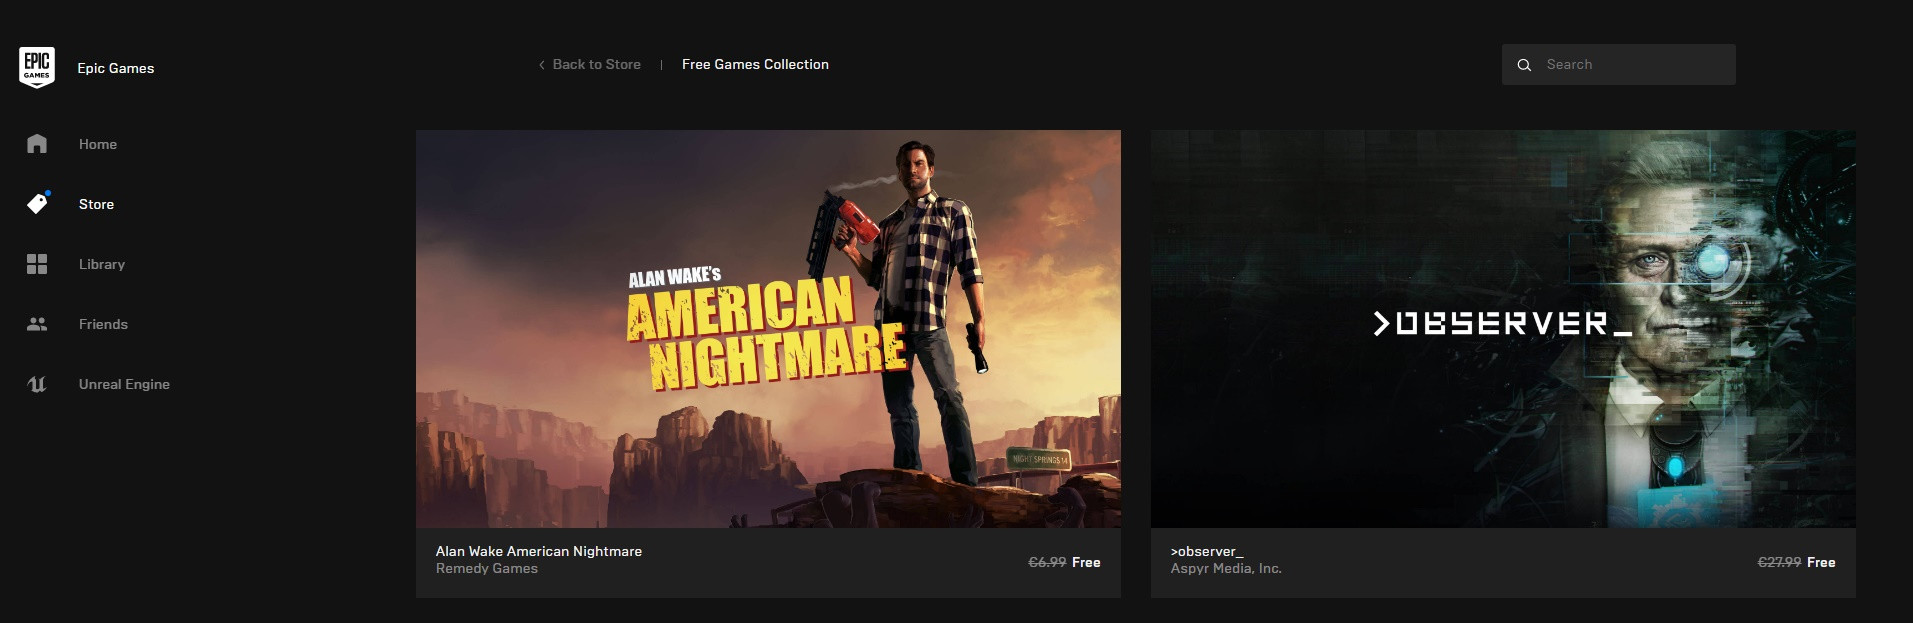 Free Game Alert Observer And Alan Wake S American Nightmare Free In The Epic Games Store Halloween Sale Launched Techpowerup